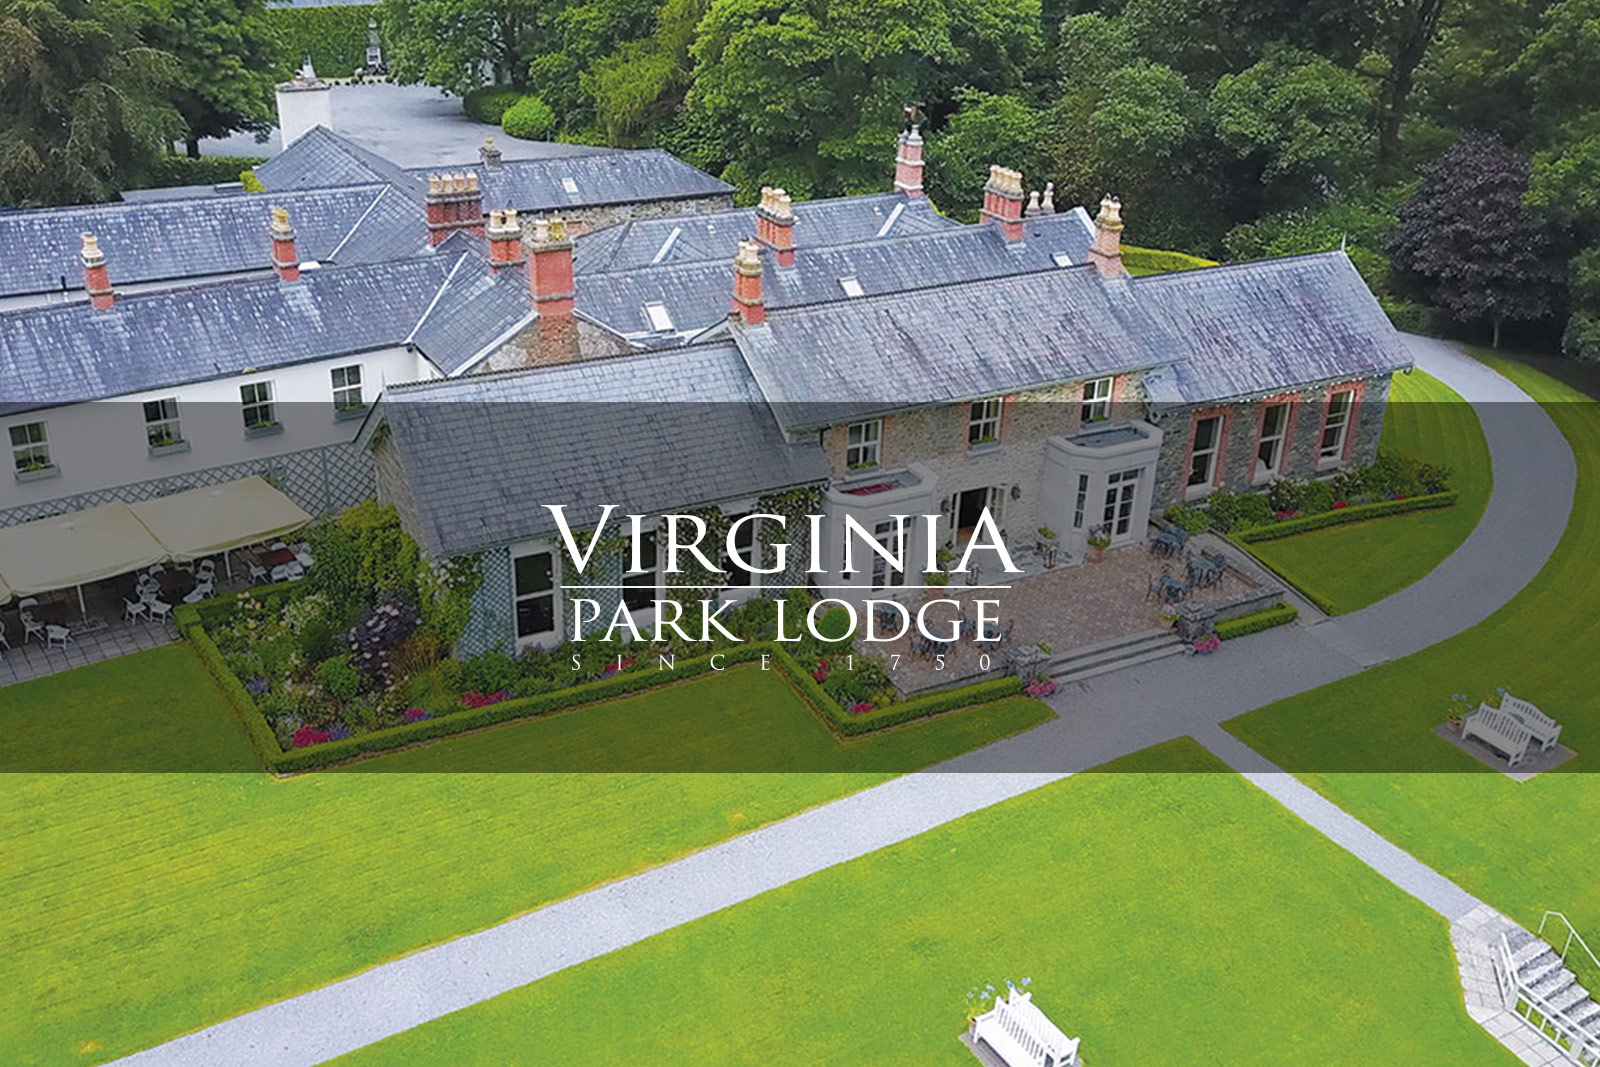 Virginia Park Lodge